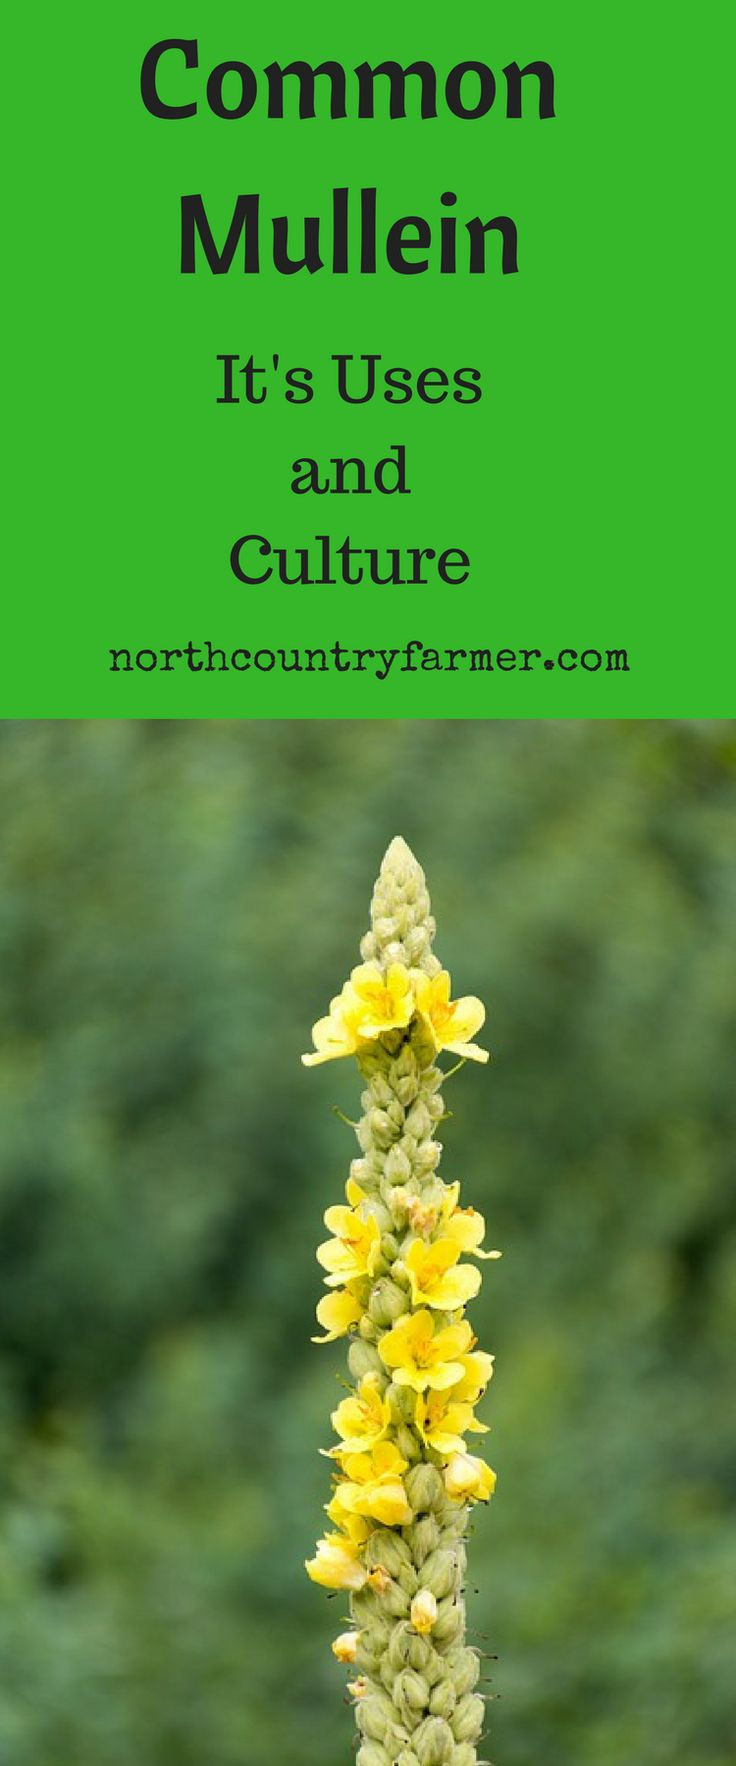 Common Mullein.  Uses and Culture. Medicinal plant